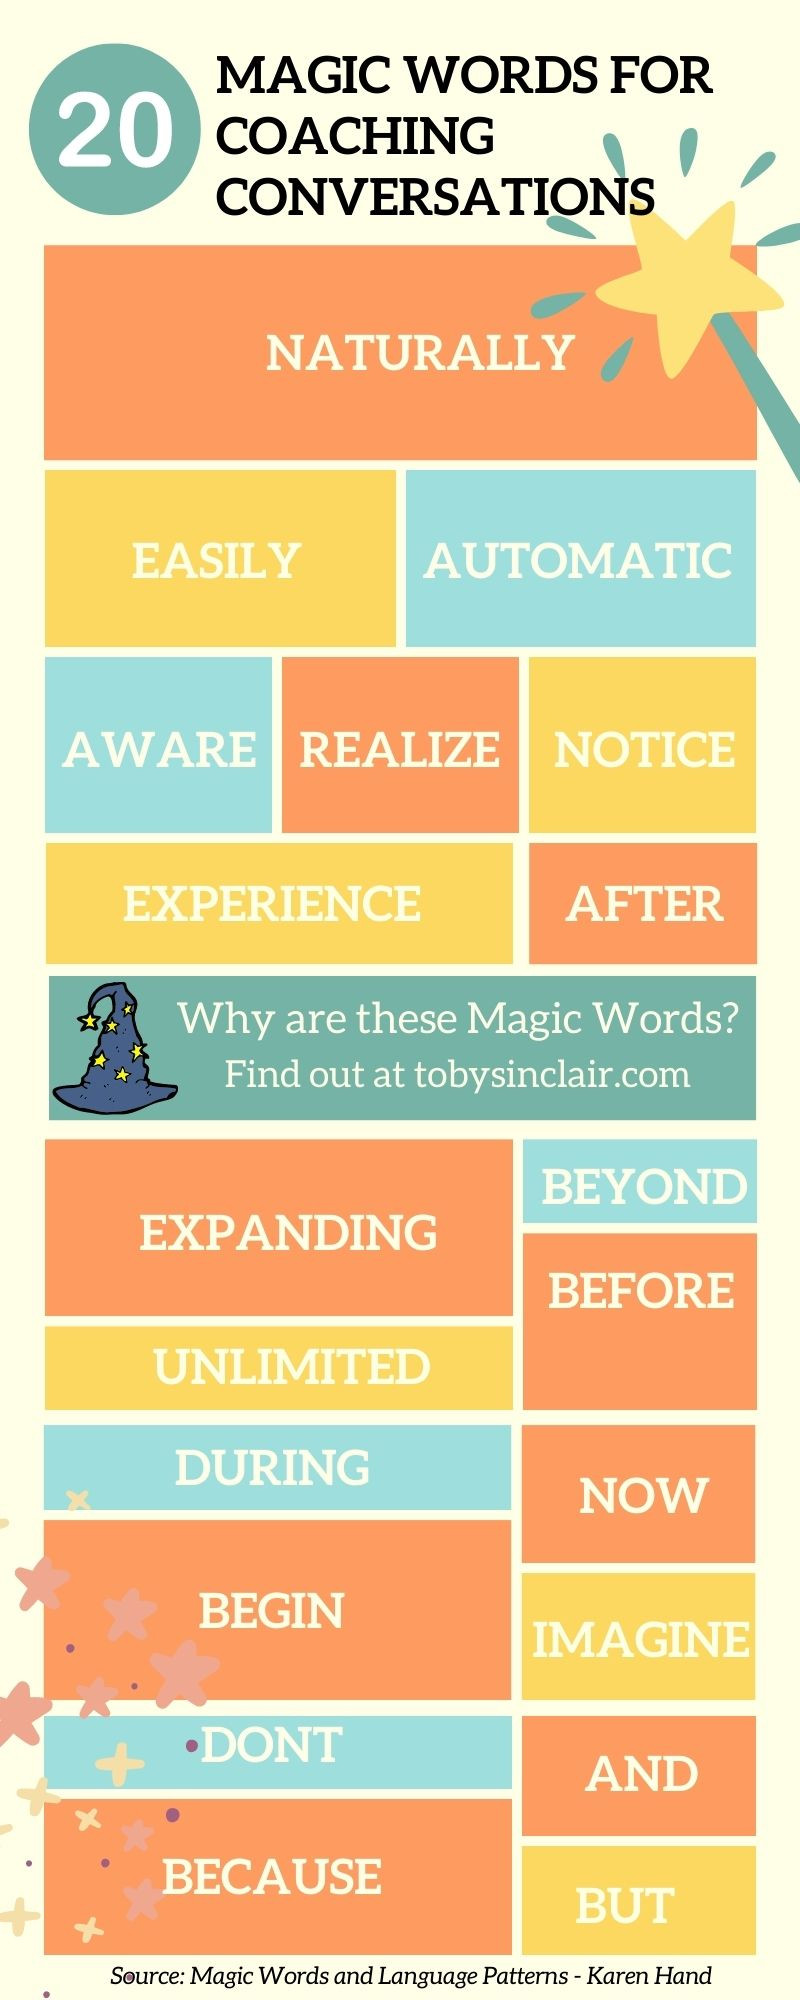 Magic Words for Coaching Conversations Infographic